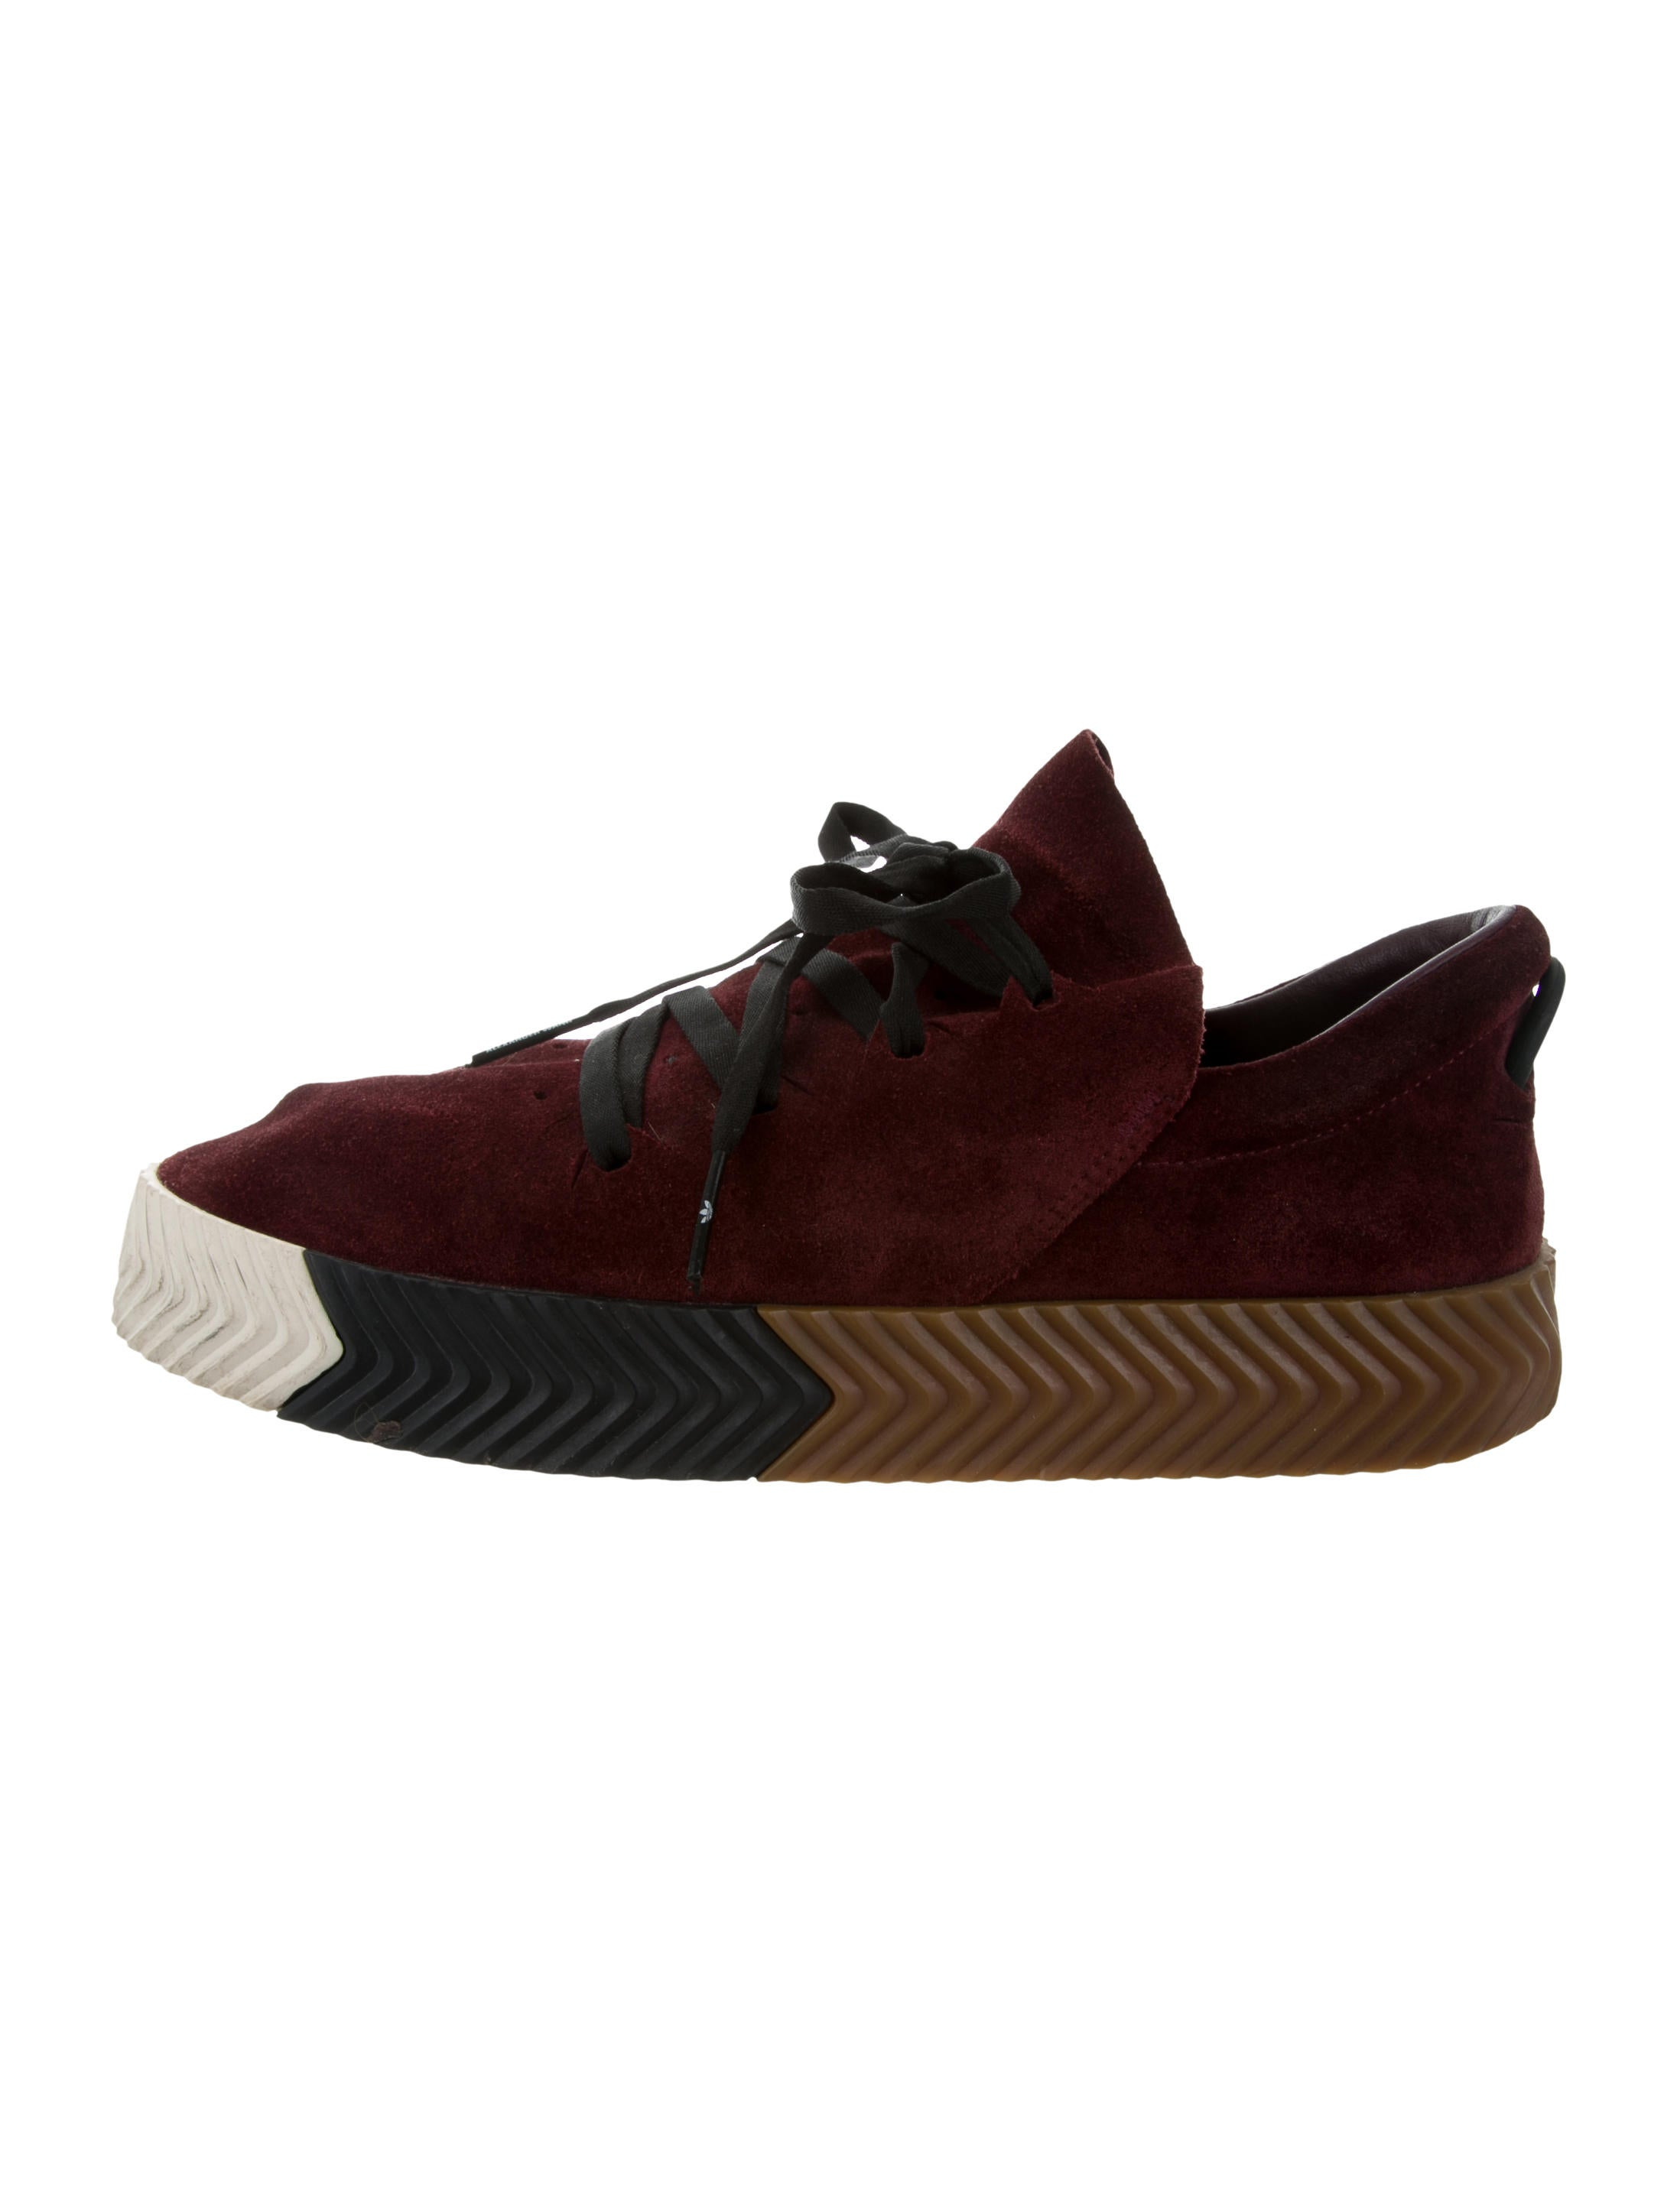 info for 29bc2 cbf0b adidas Originals by Alexander Wang AW Skate Sneakers - Shoes